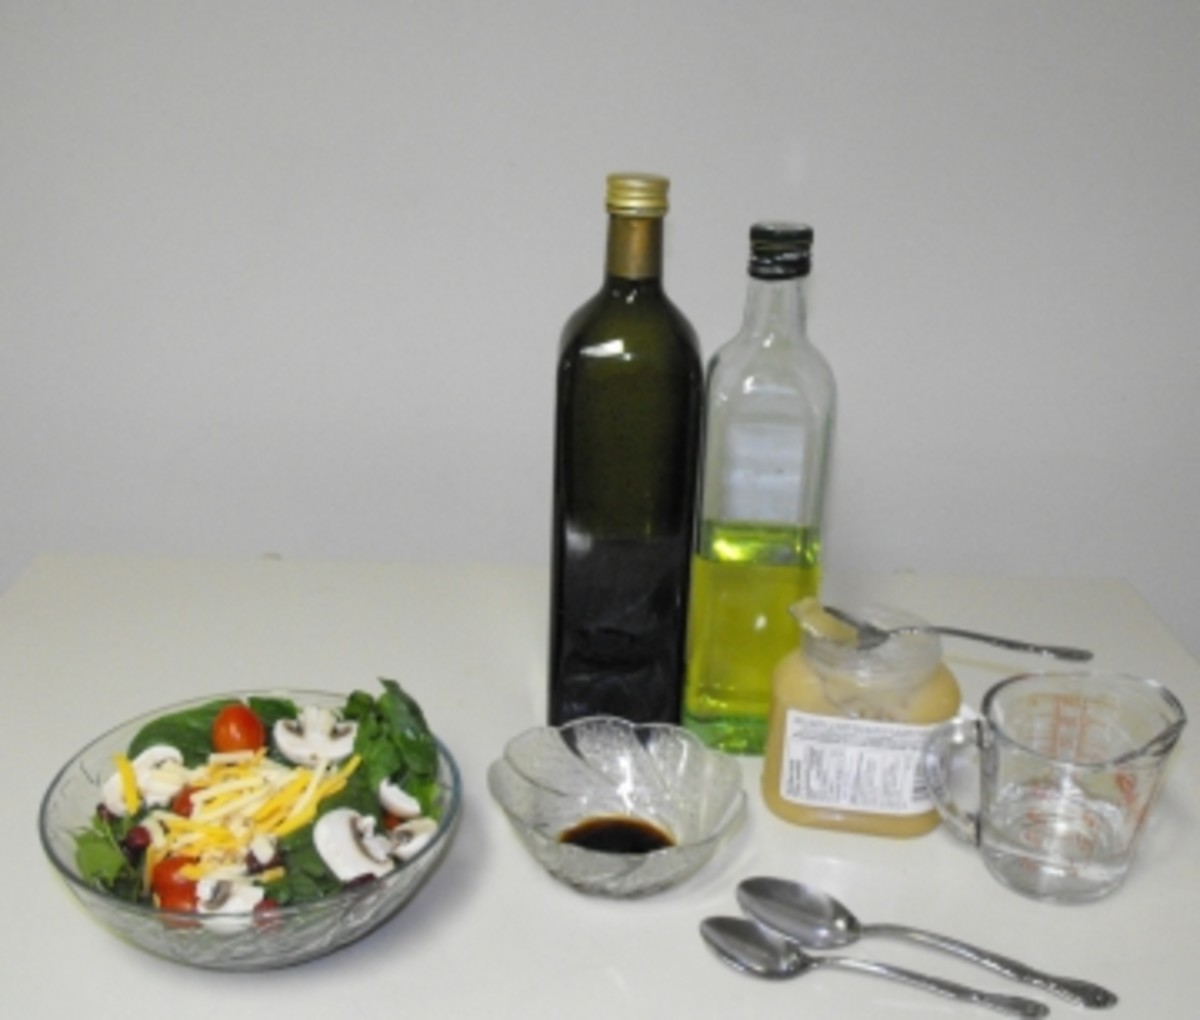 Homemade Oil and Balsamic Vinegarette Salad Dressing